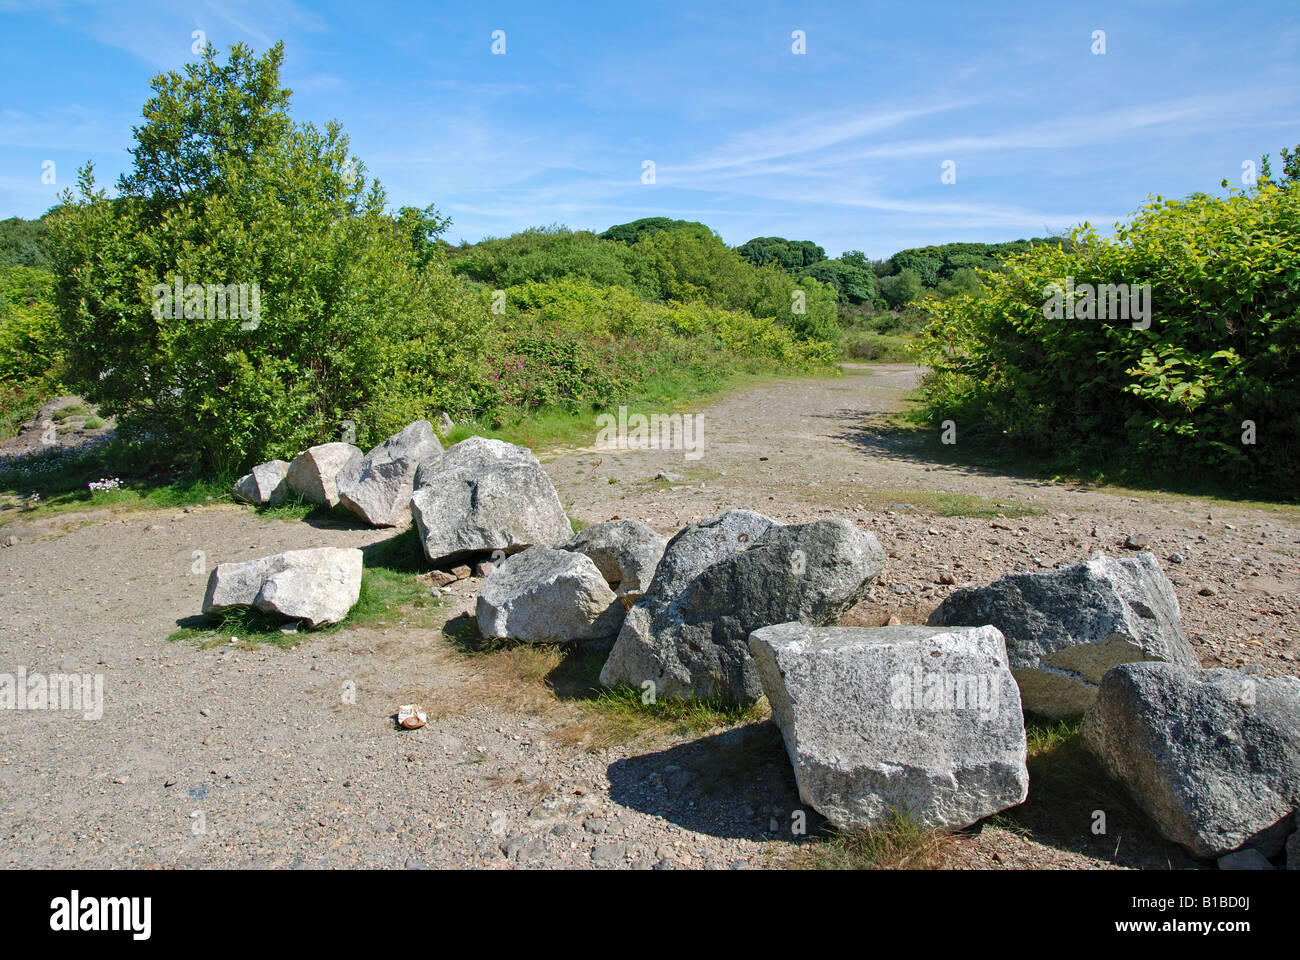 a  roadblock to prevent travellers setting up camp on old mining wasteland near truro in cornwall,england, uk - Stock Image